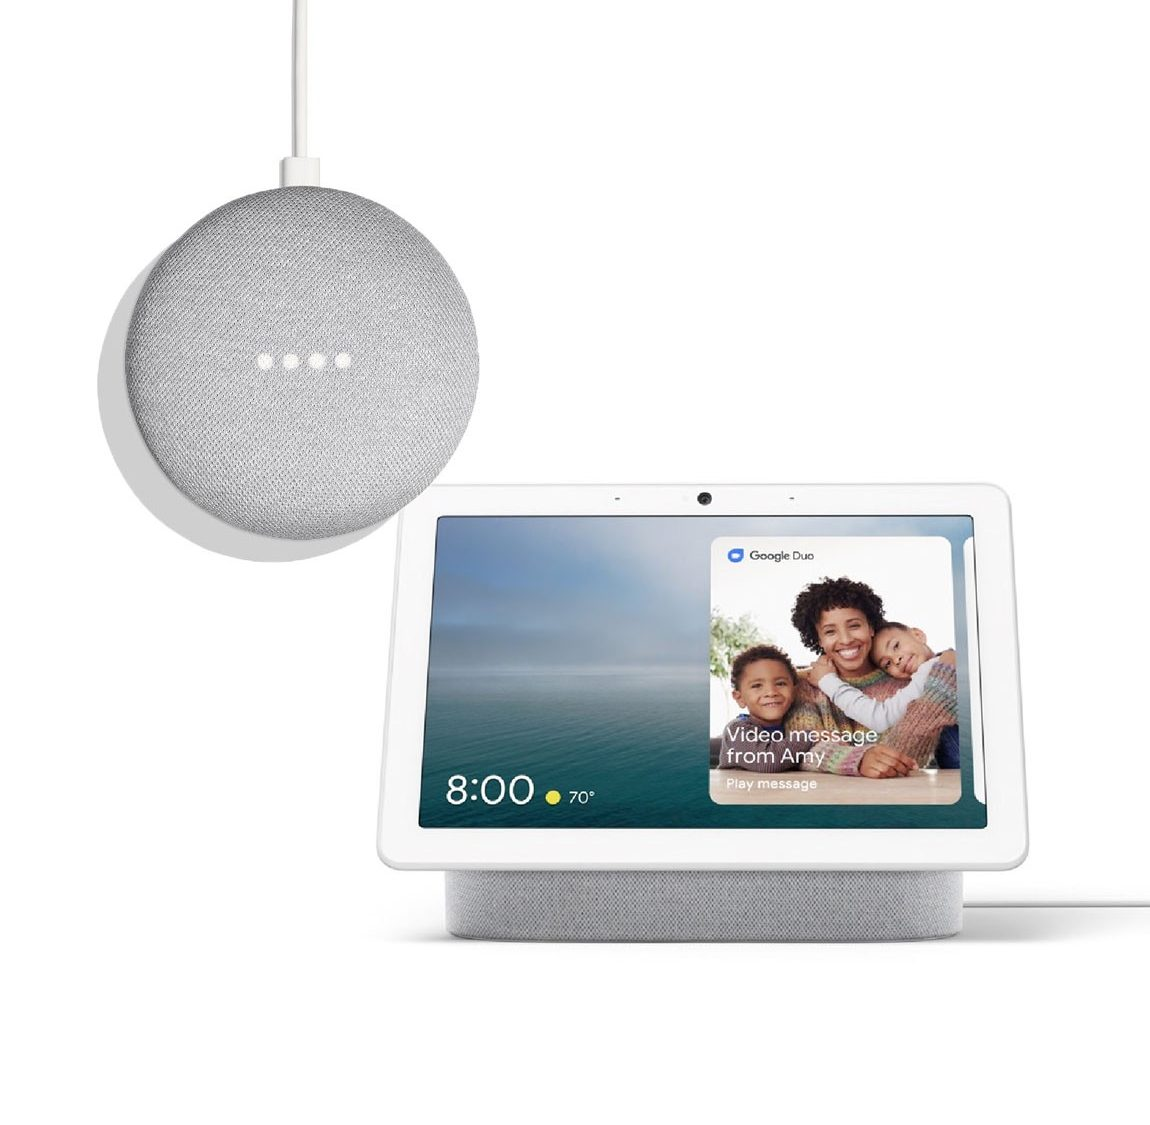 Deal Alert: Grab a Nest Hub Max and save 15% or get a free Home Mini